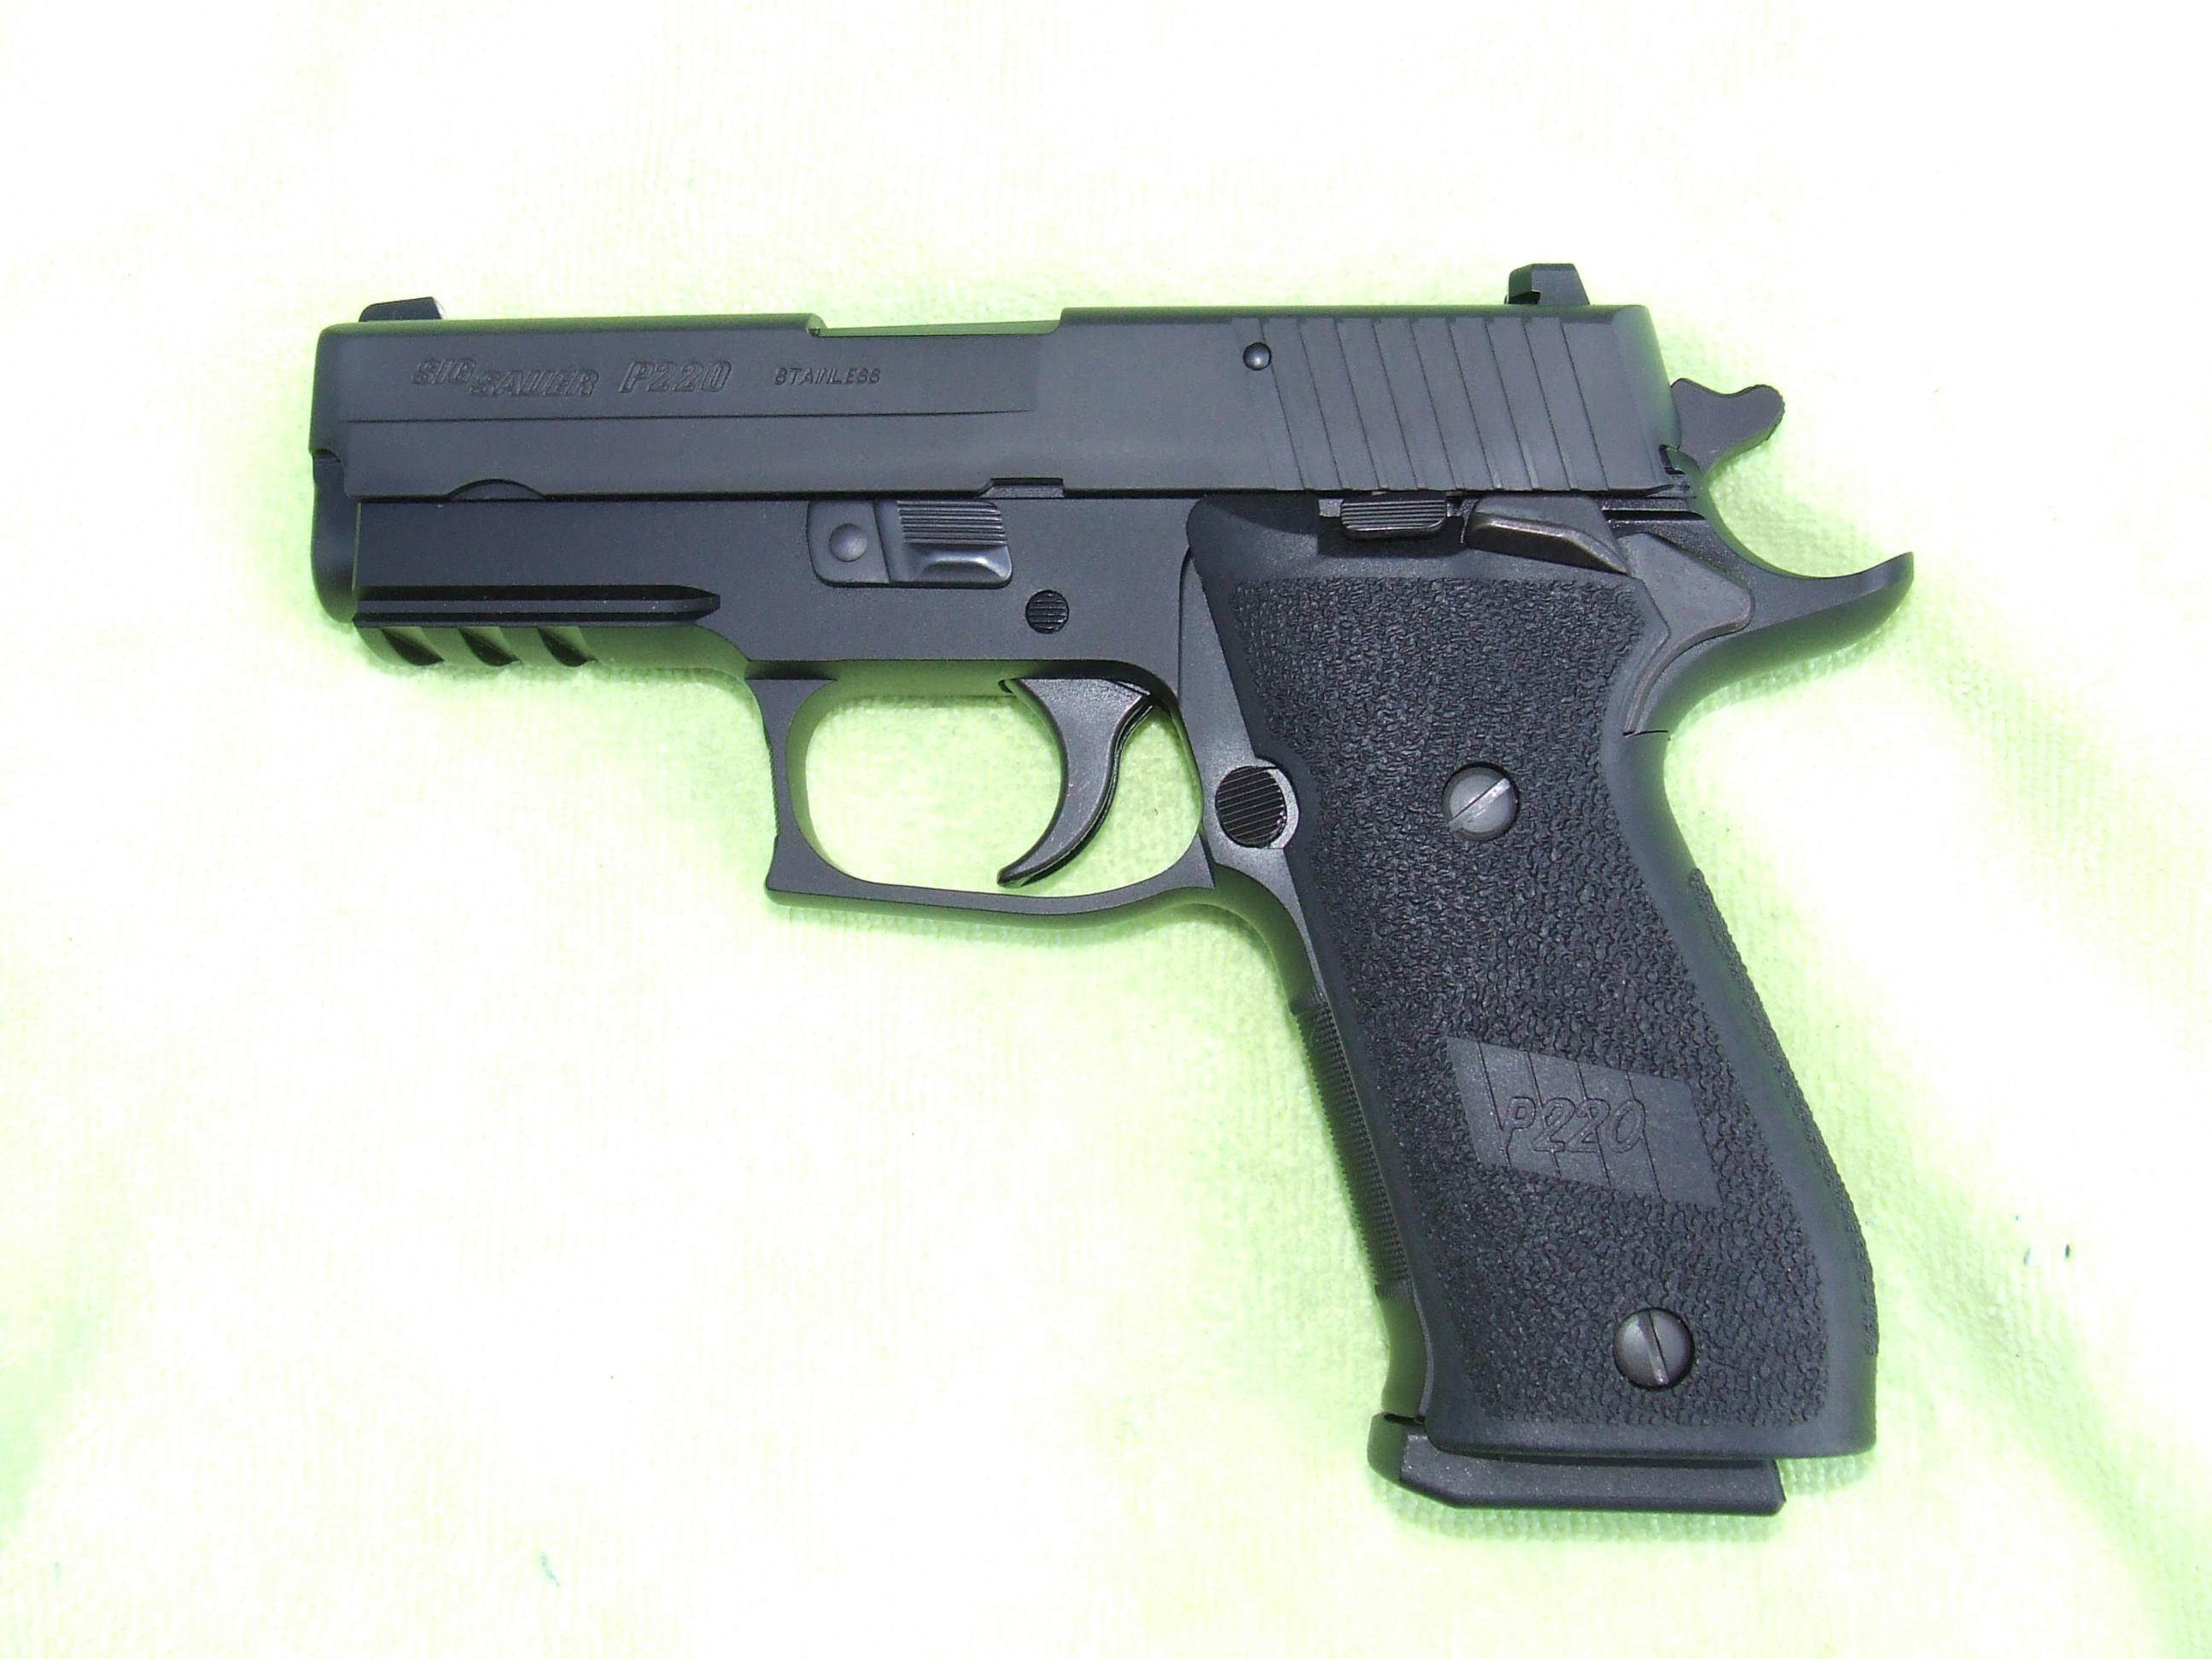 Need some info on the SIG P220 Carry SAS-dscf0397.jpg